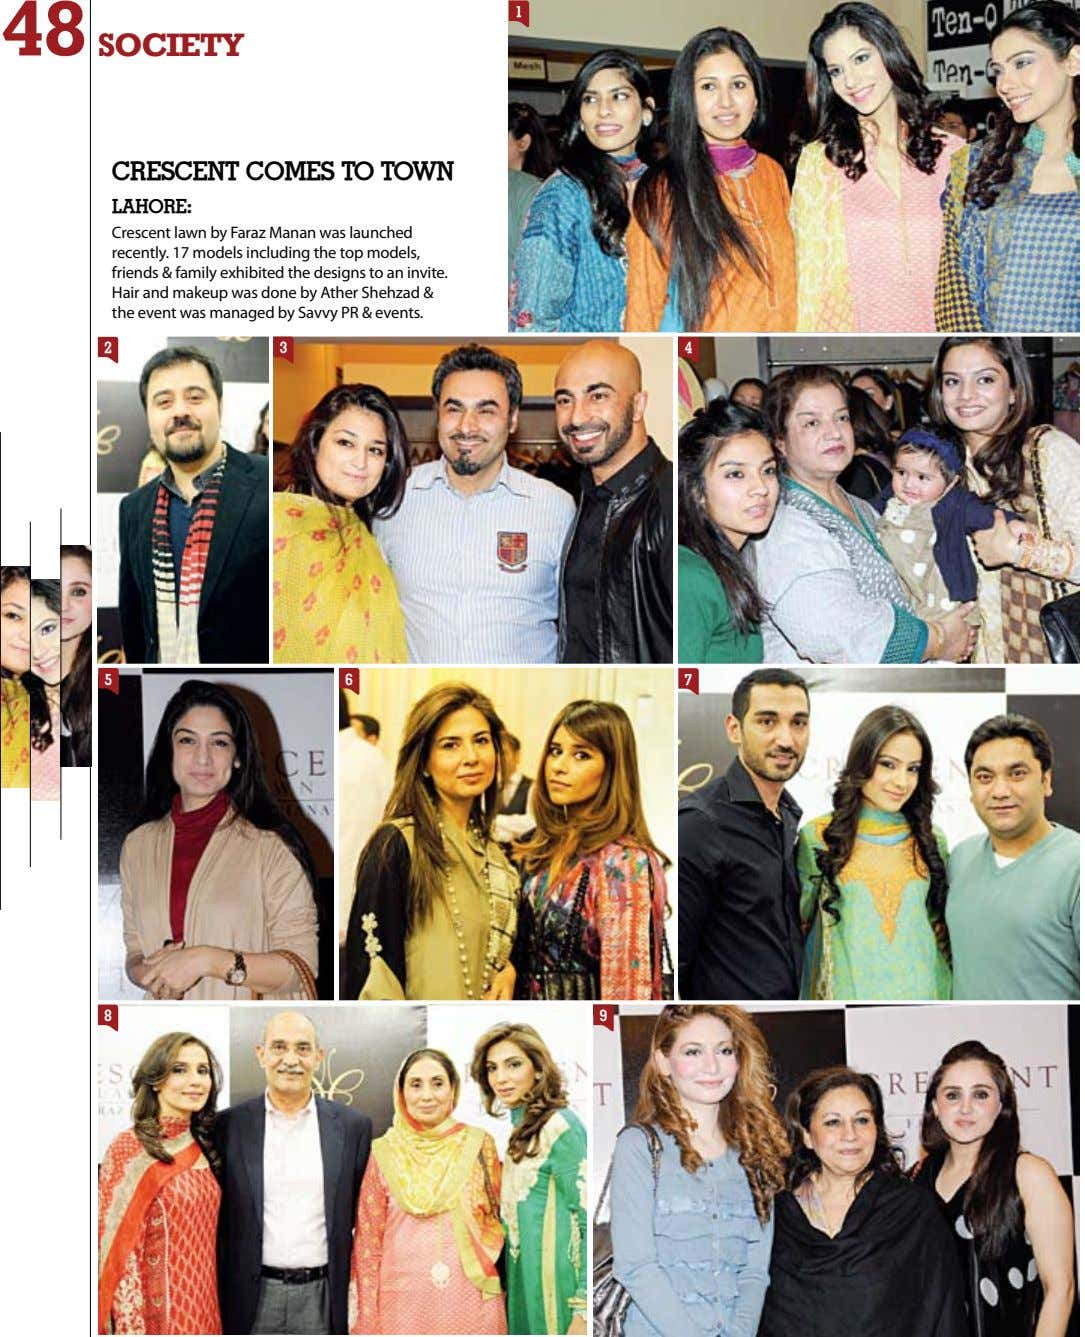 48 1 society CresCent Comes to town LAHore: Crescent lawn by Faraz Manan was launched